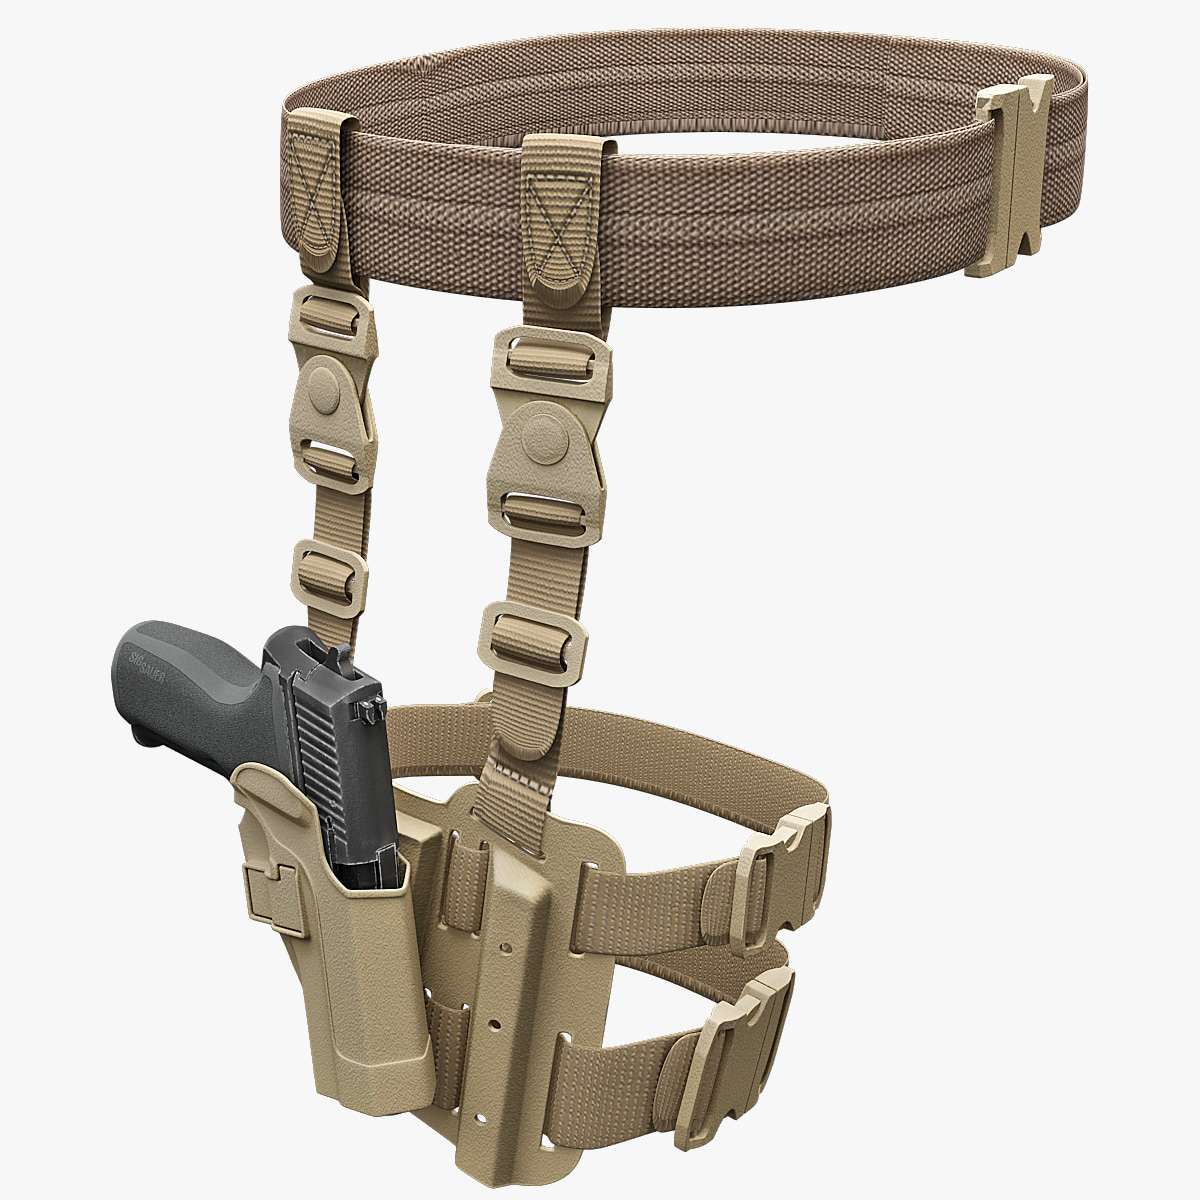 Tactical_SERPA_Pistol_Holster_Collection_000.jpg